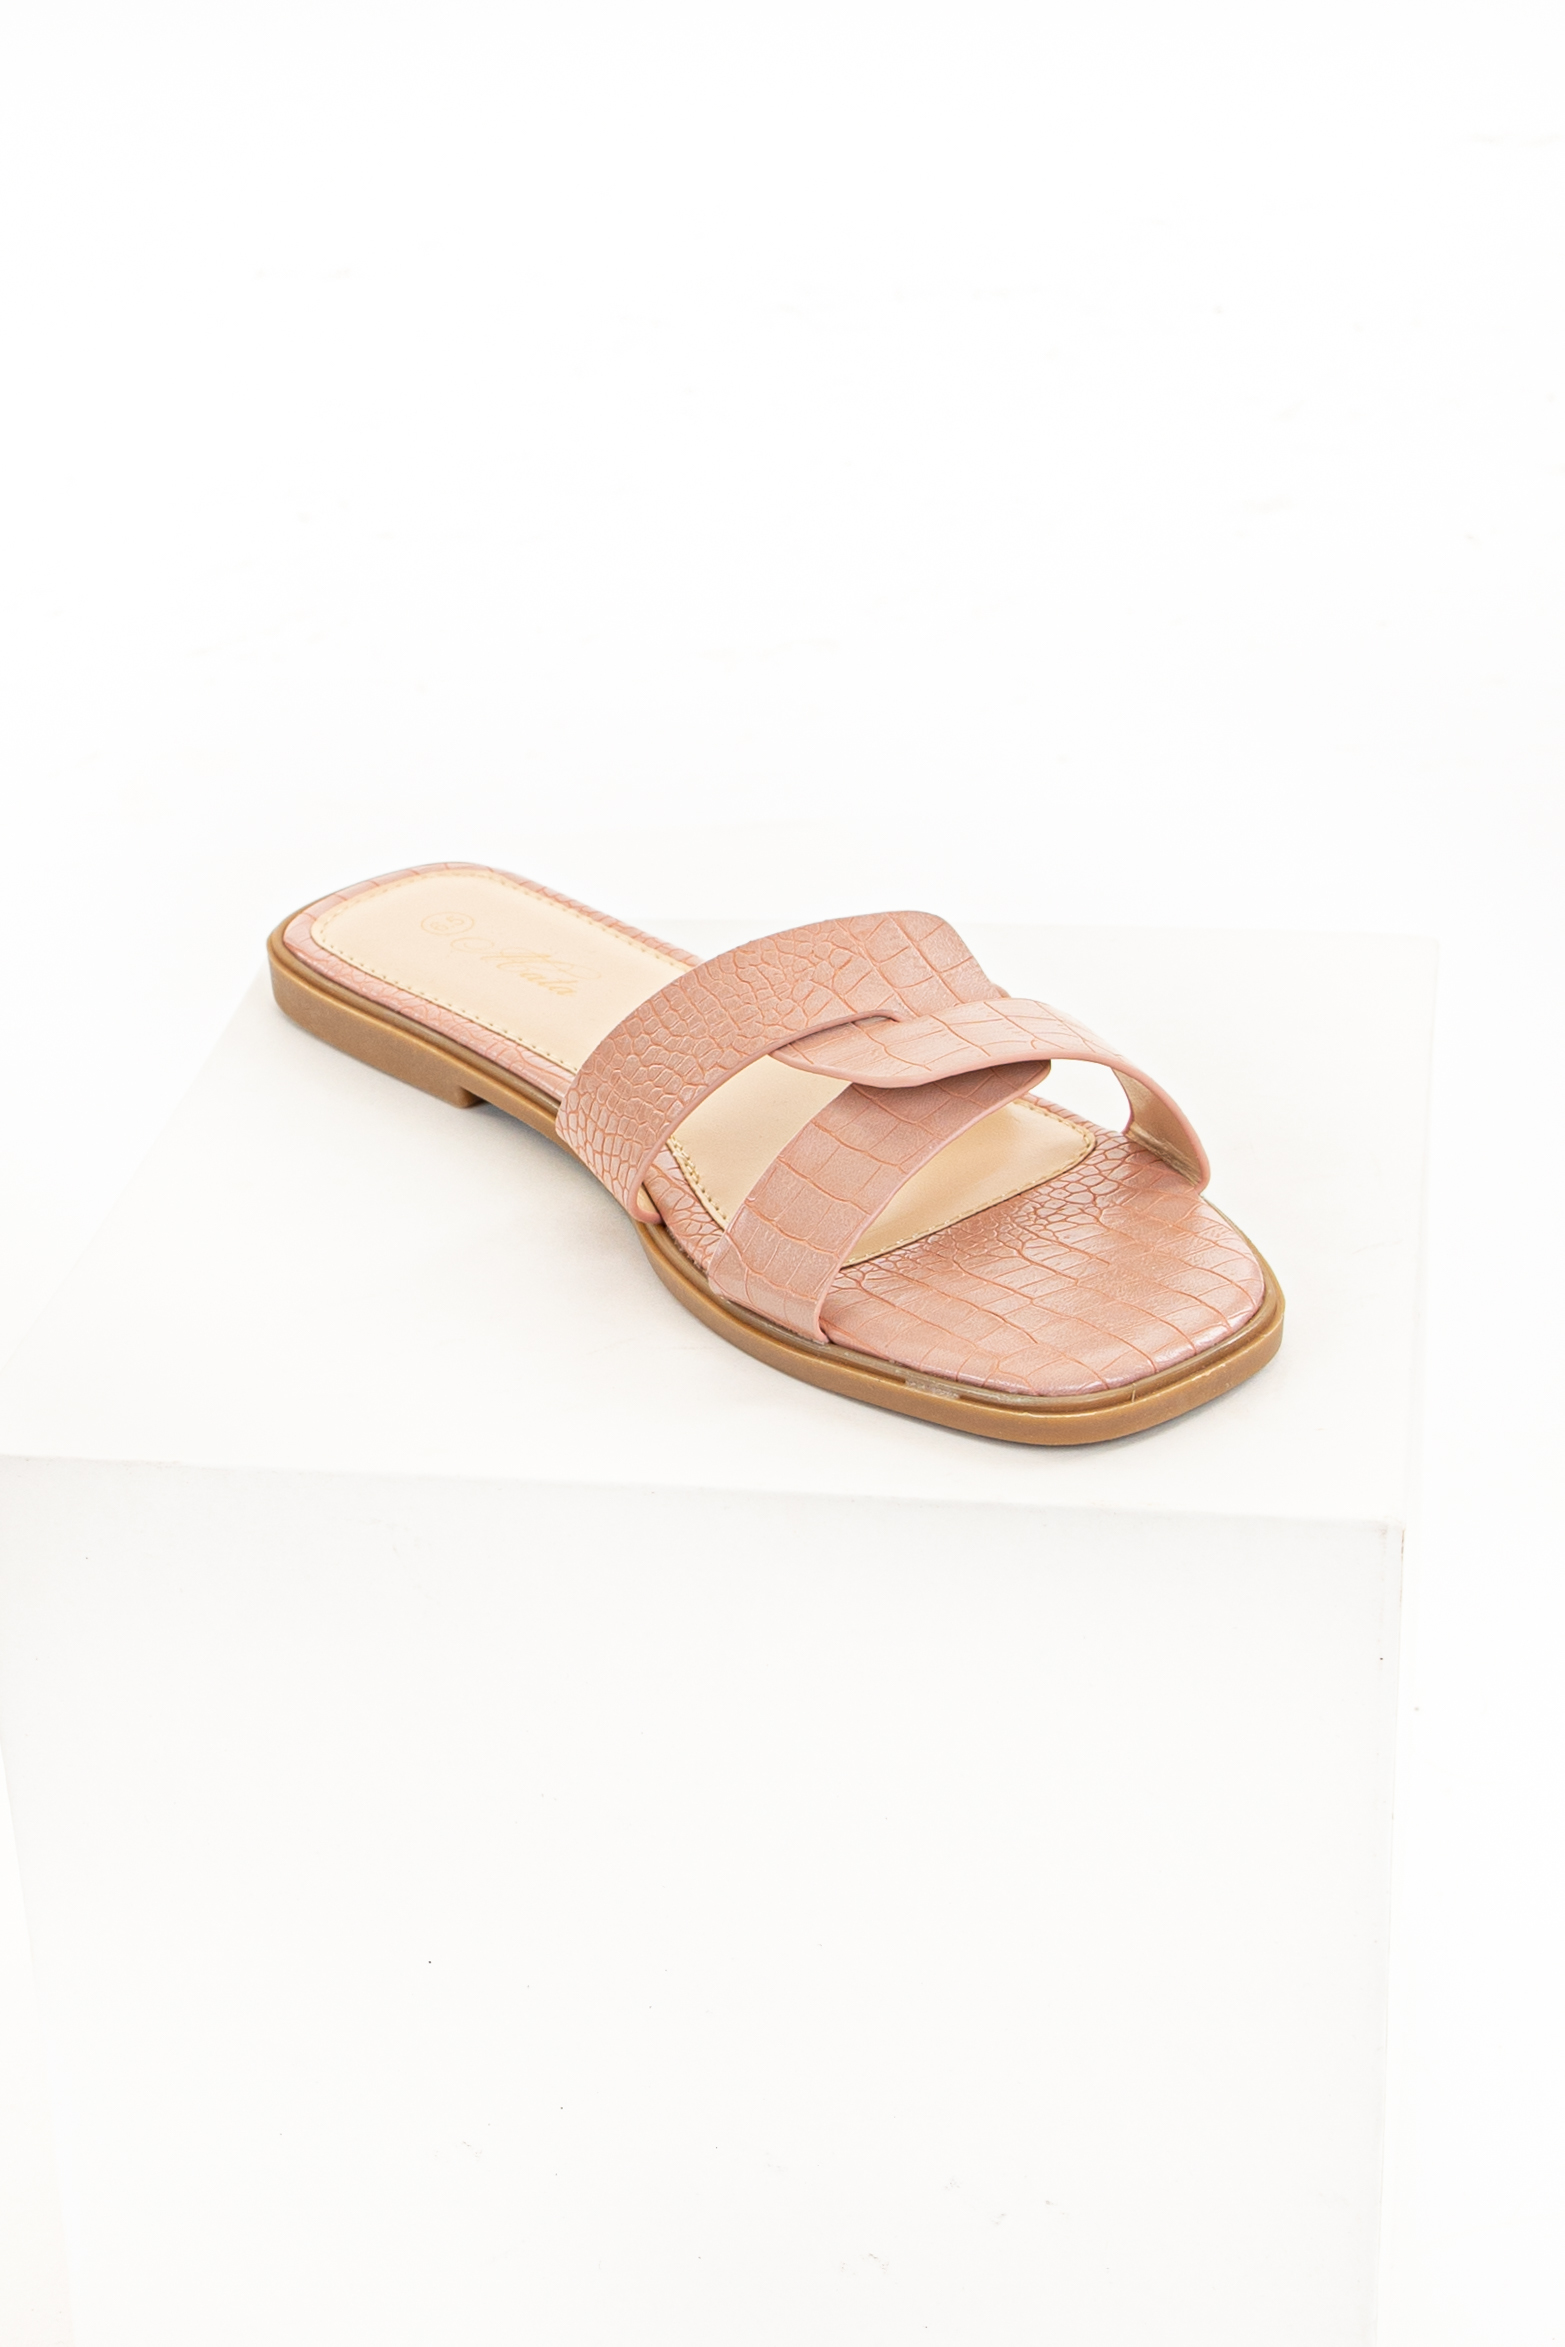 Blush Slip On Sandals with Reptile Texture and Open Toe